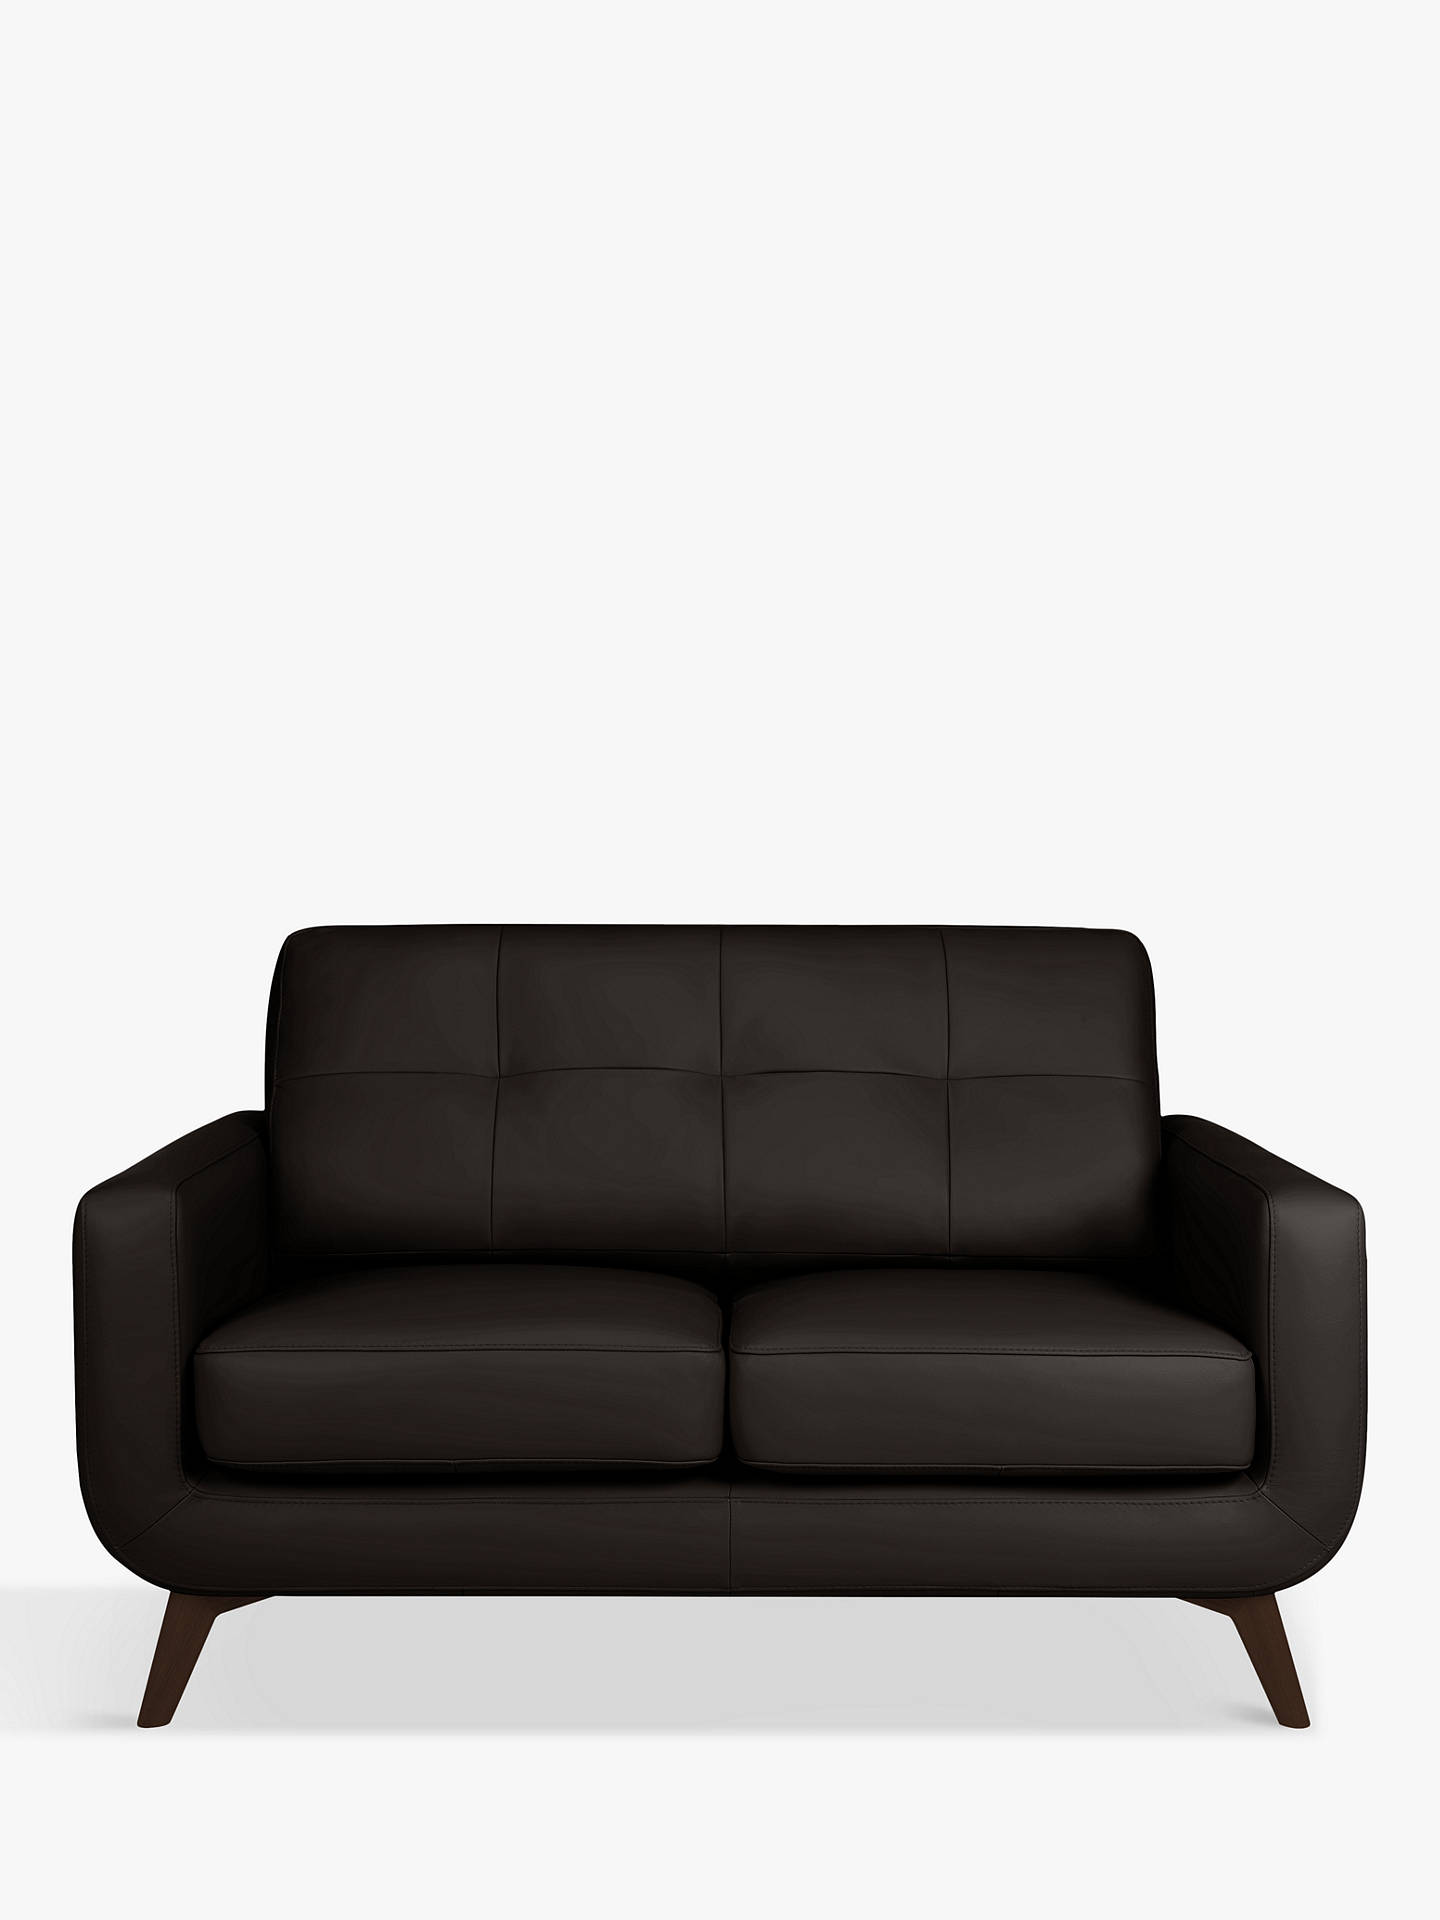 Buy John Lewis & Partners Barbican Small 2 Seater Leather Sofa, Dark Leg, Demetra Charcoal Online at johnlewis.com